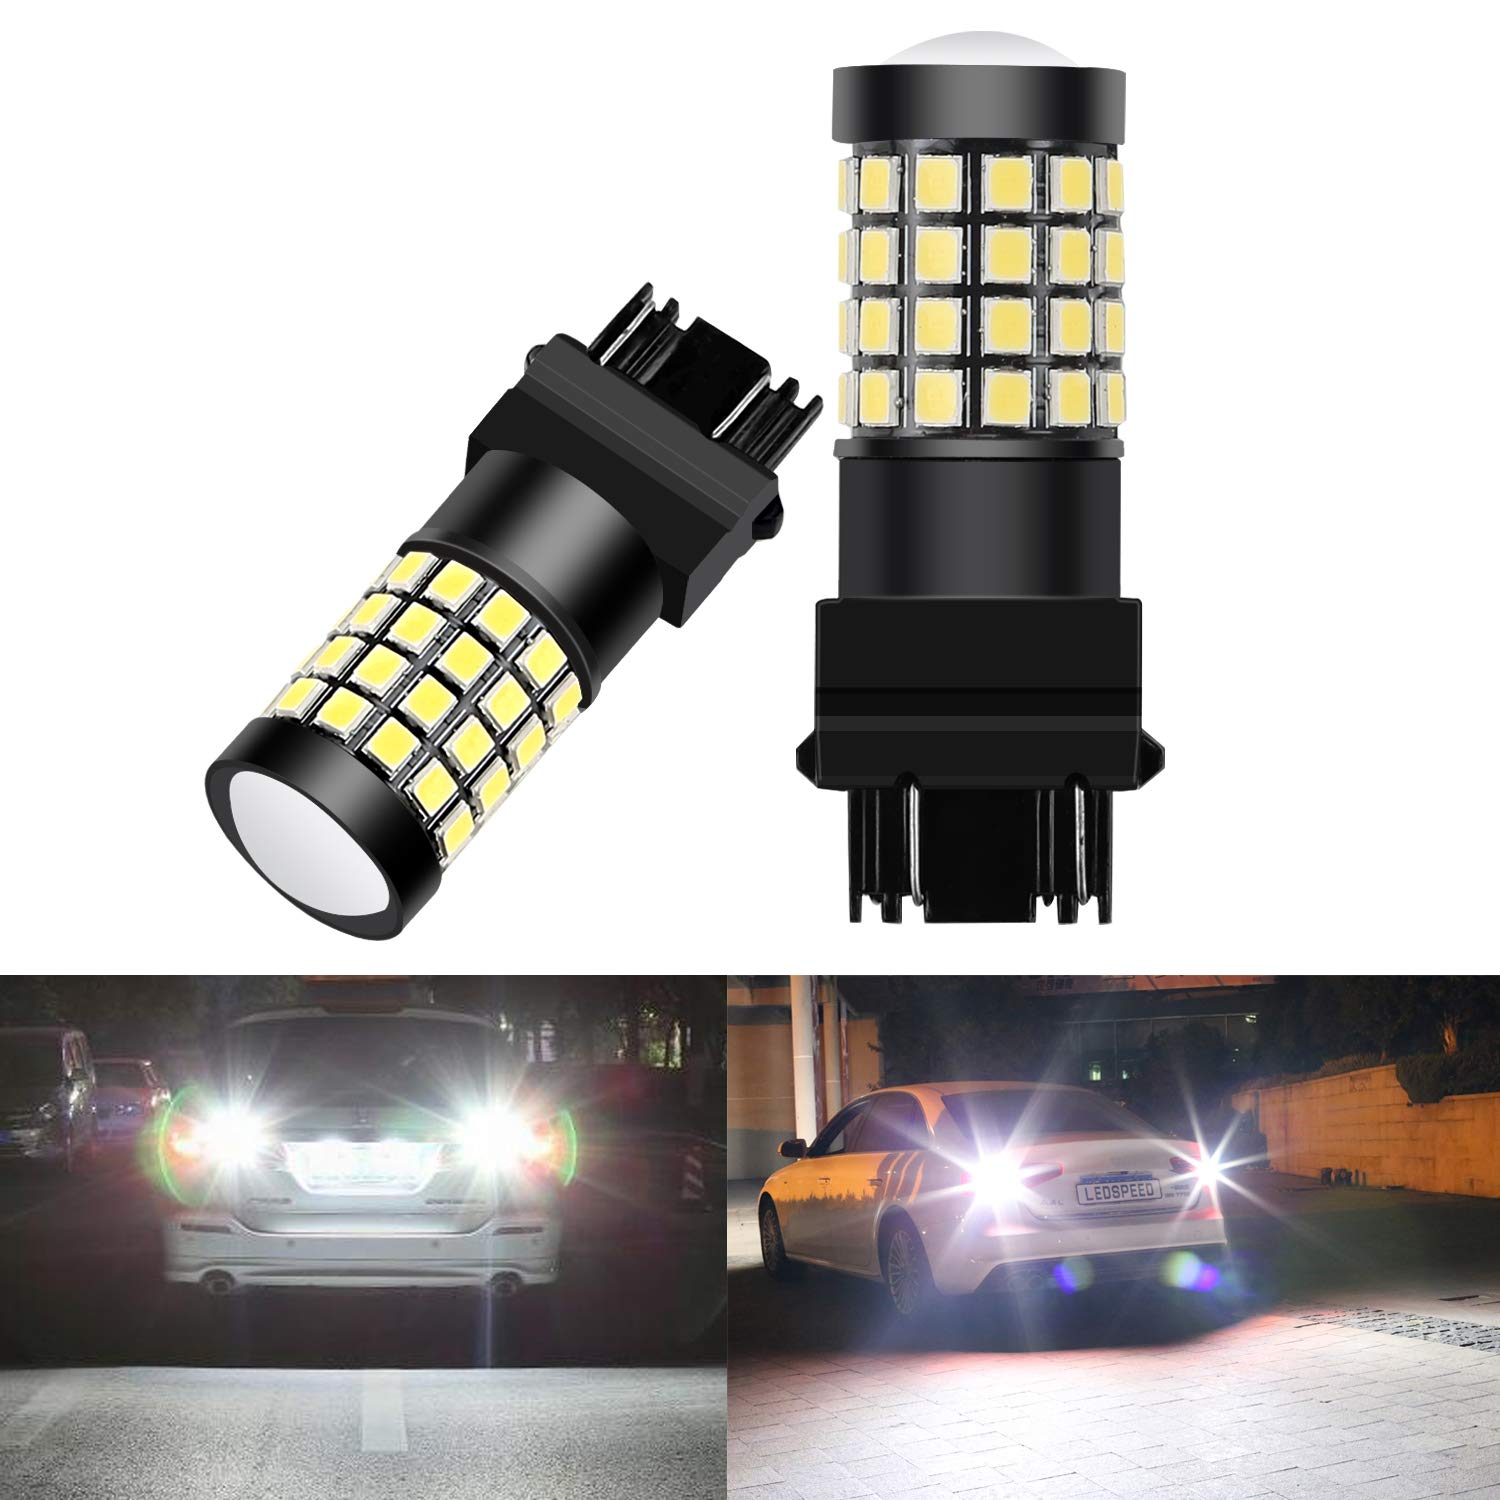 Nakobo 1000 Lumen 921 912 T15 Led Bulb,45SMD High illumination Low Power for Back up Reverse Tail Light,Canbus Error Free Xenon White, Pack of 2